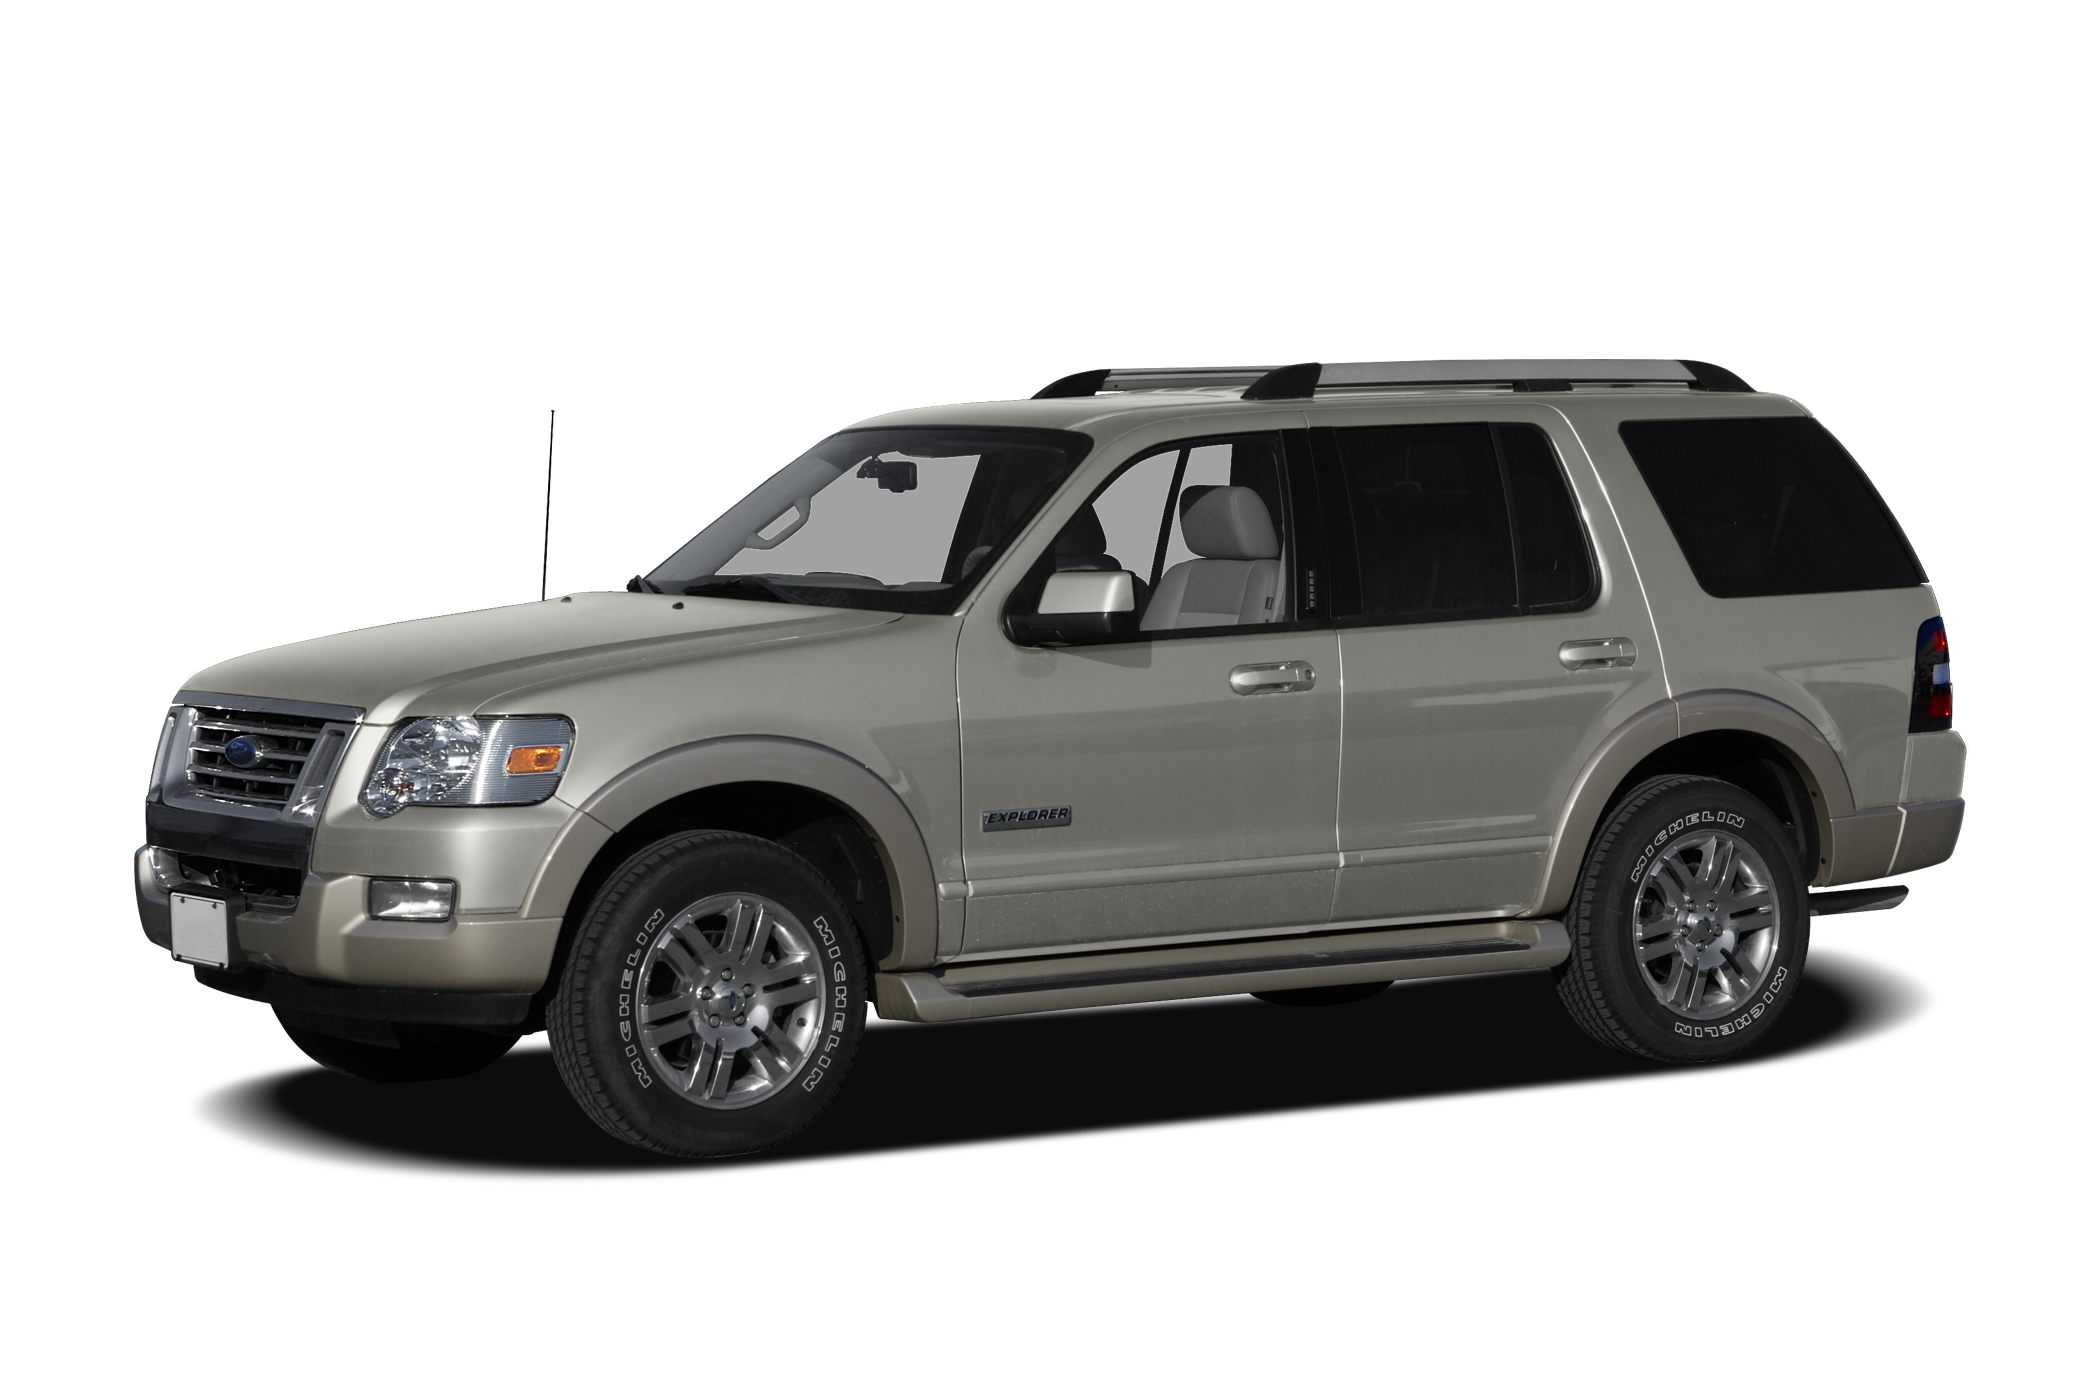 2006 Ford Explorer XLT 2 YEARS MAINTENANCE INCLUDED WITH EVERY VEHICLE PURCHASED CARFAX BuyBack Gu